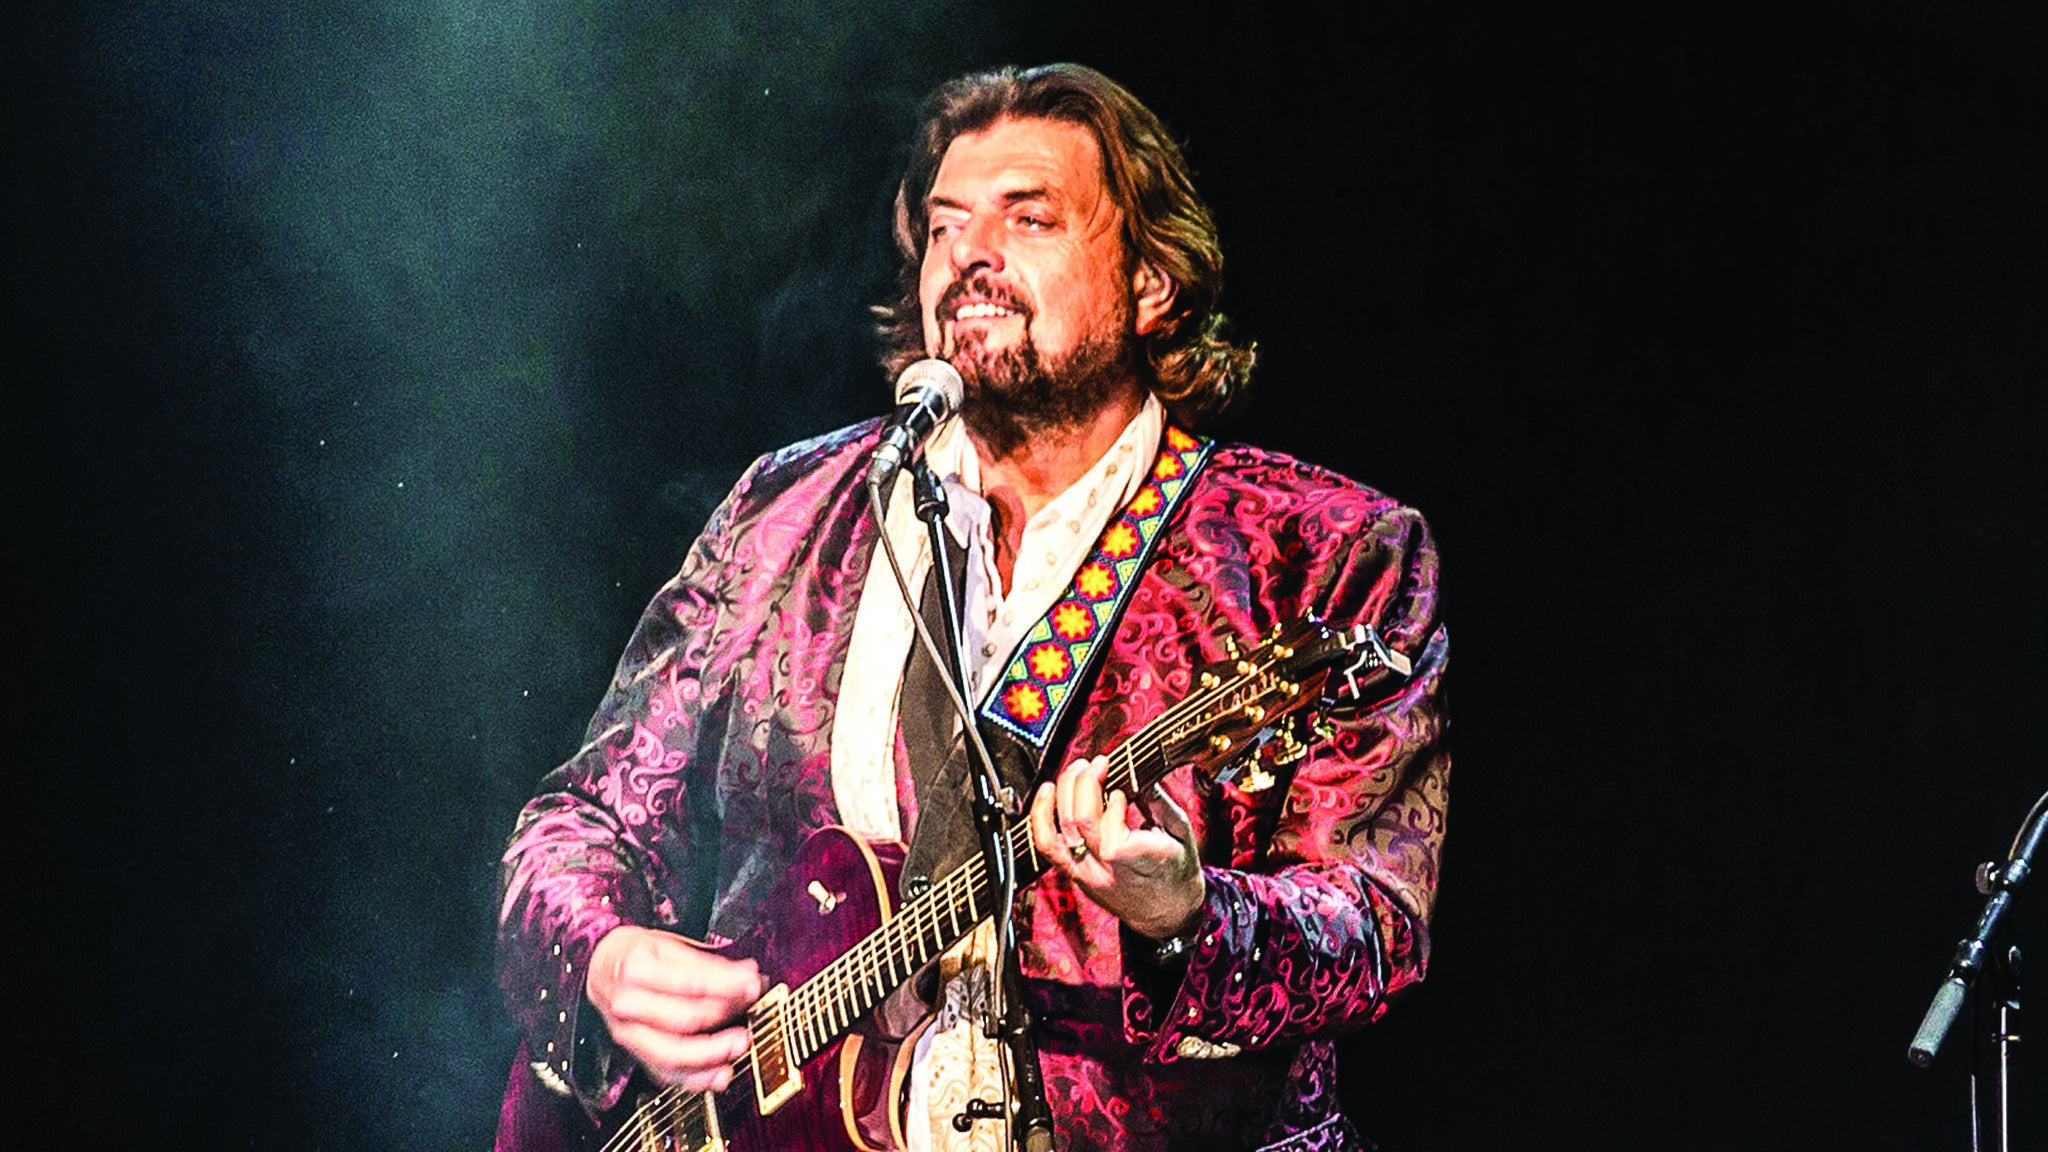 Alan Parsons Project at King Performing Arts Center